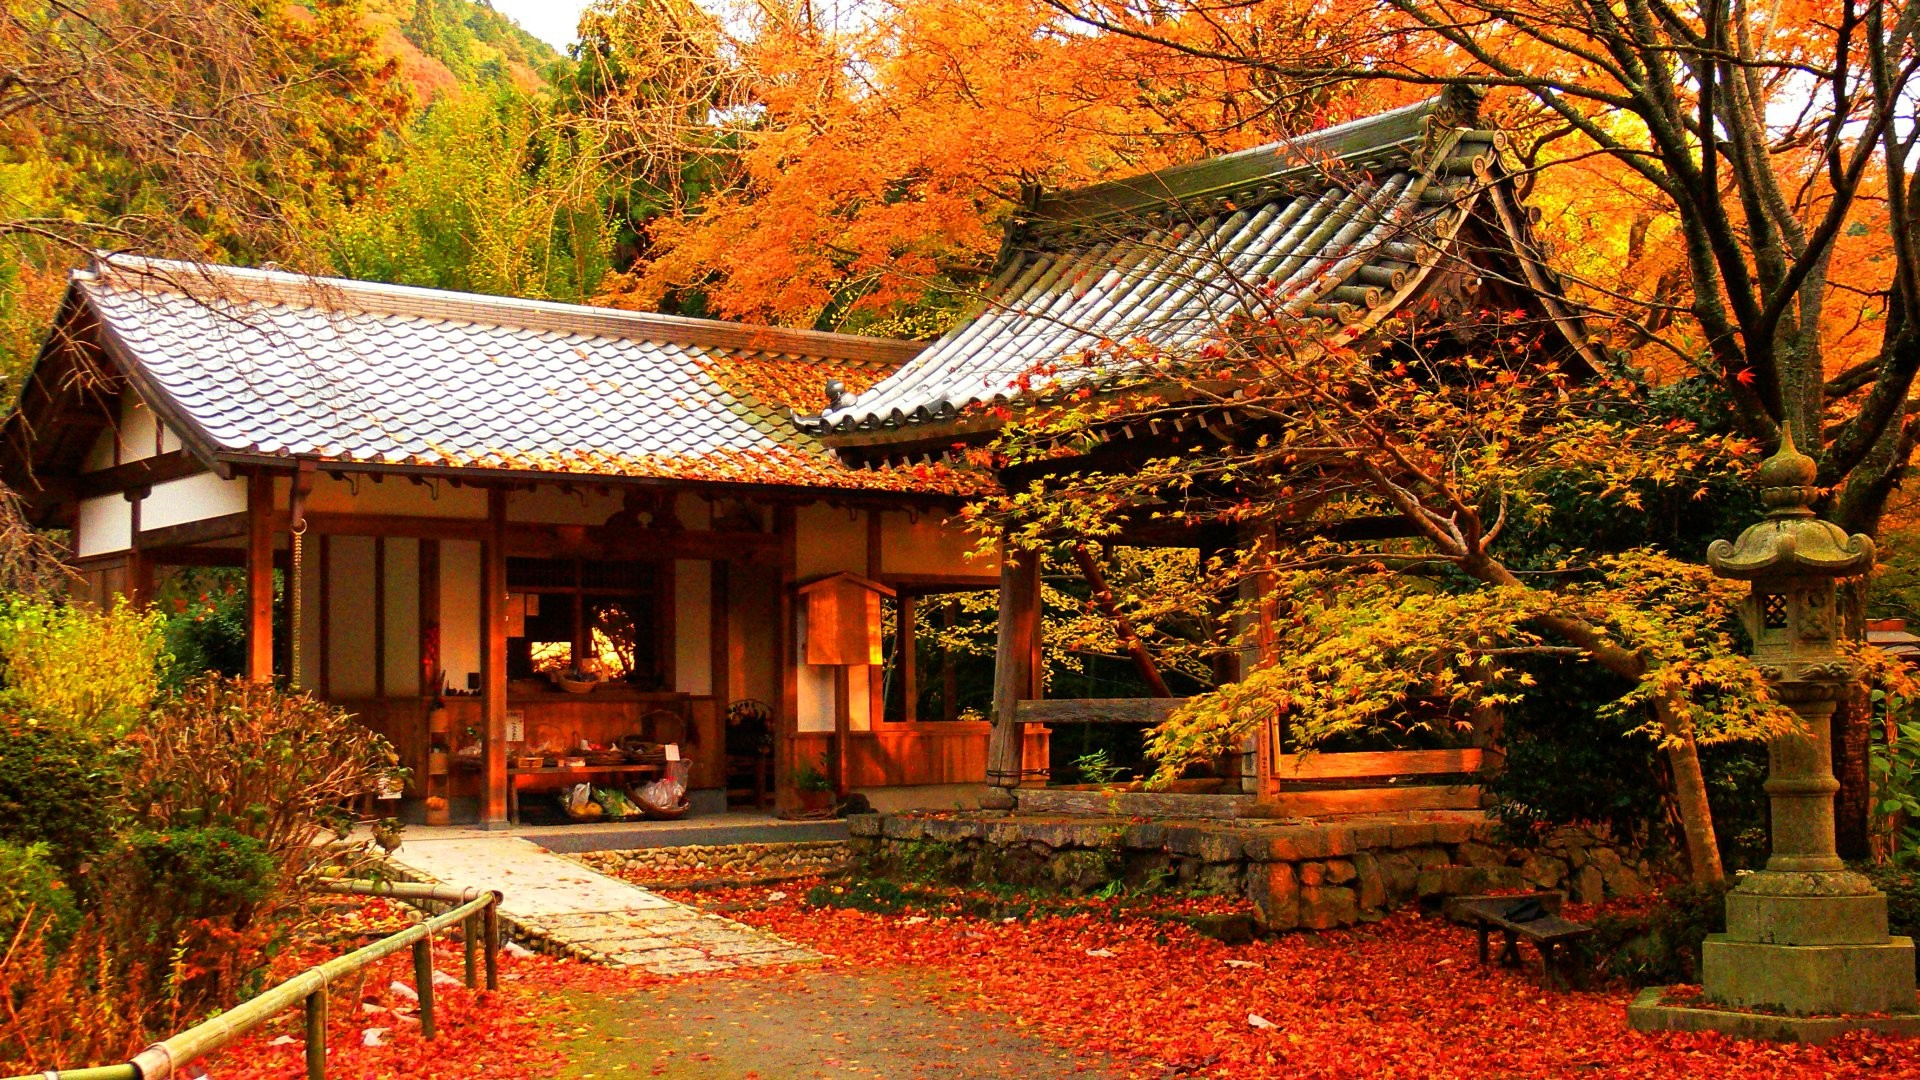 Free Download Autumn Color In Japan 18432 Wallpaper Wallpaper Hd 1920x1080 For Your Desktop Mobile Tablet Explore 37 Hd Fall Colours Wallpapers Free Fall Wallpapers For Desktop Free Fall